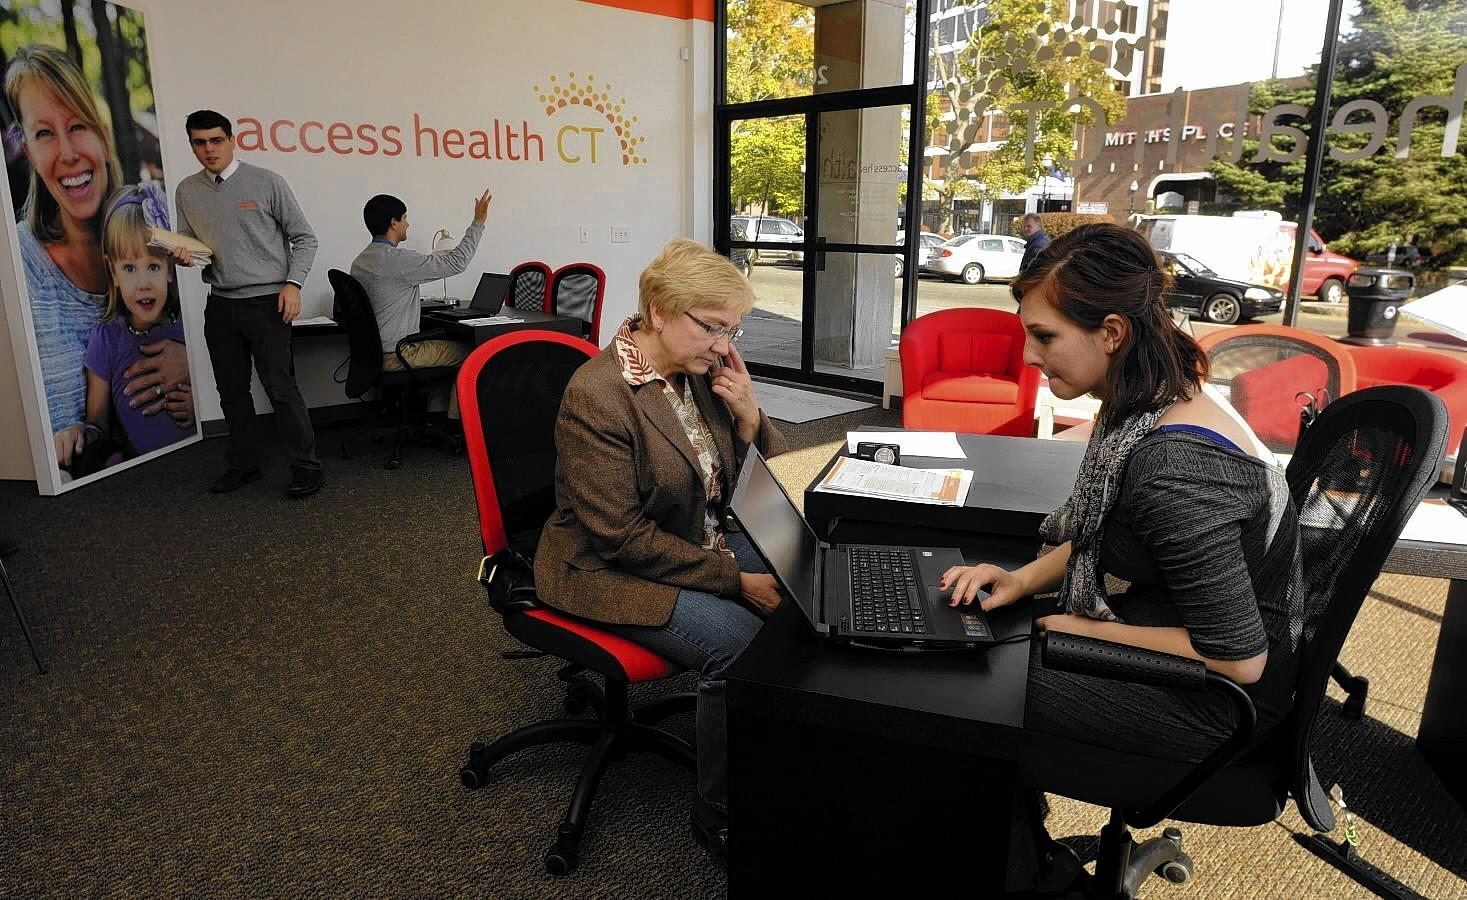 Monica Caballeros, of Hartford, (right) a bi-lingual outreach worker, answers questions for Stanislawa Rodriguez, of New Britain, about obtaining health insurance through Connecticut's new health exchange at Access Health CT's newly opened storefront in New Britain Tuesday. Rodriguez lost her job - and her health care - several years ago, and has been self-insured since. She is looking into puchasing health care for her family through the new exchange that was created through the Affordable Care Act.